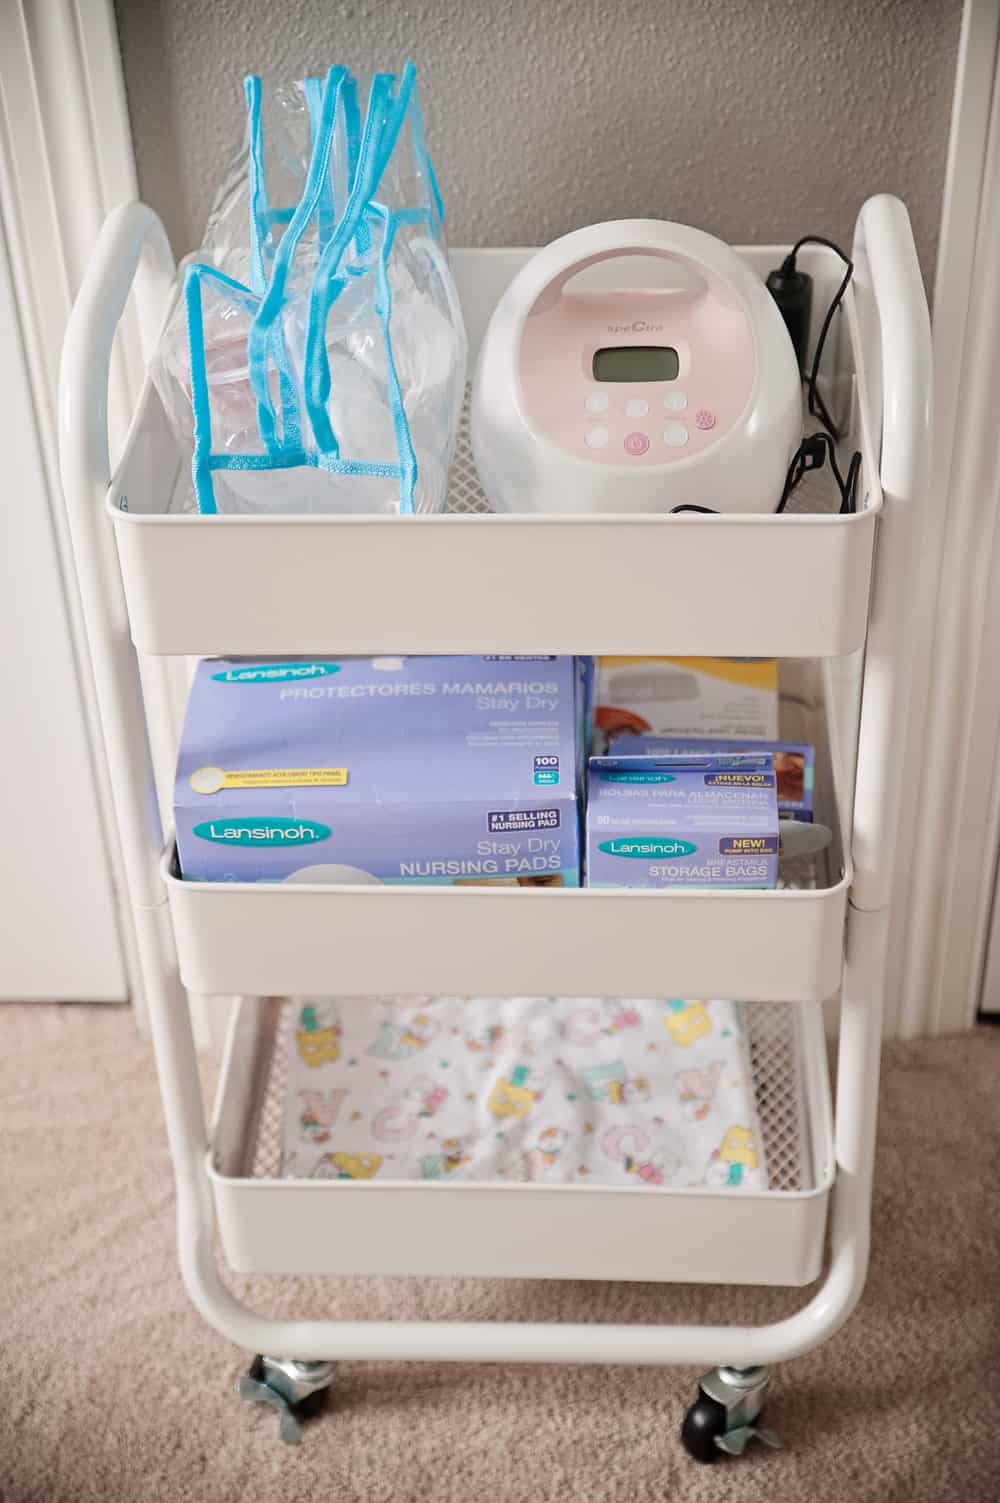 Boy Girl Gender Neutral Twin Bunny Nursery Reveal - Storage Cart White Room Essentials Breastfeeding